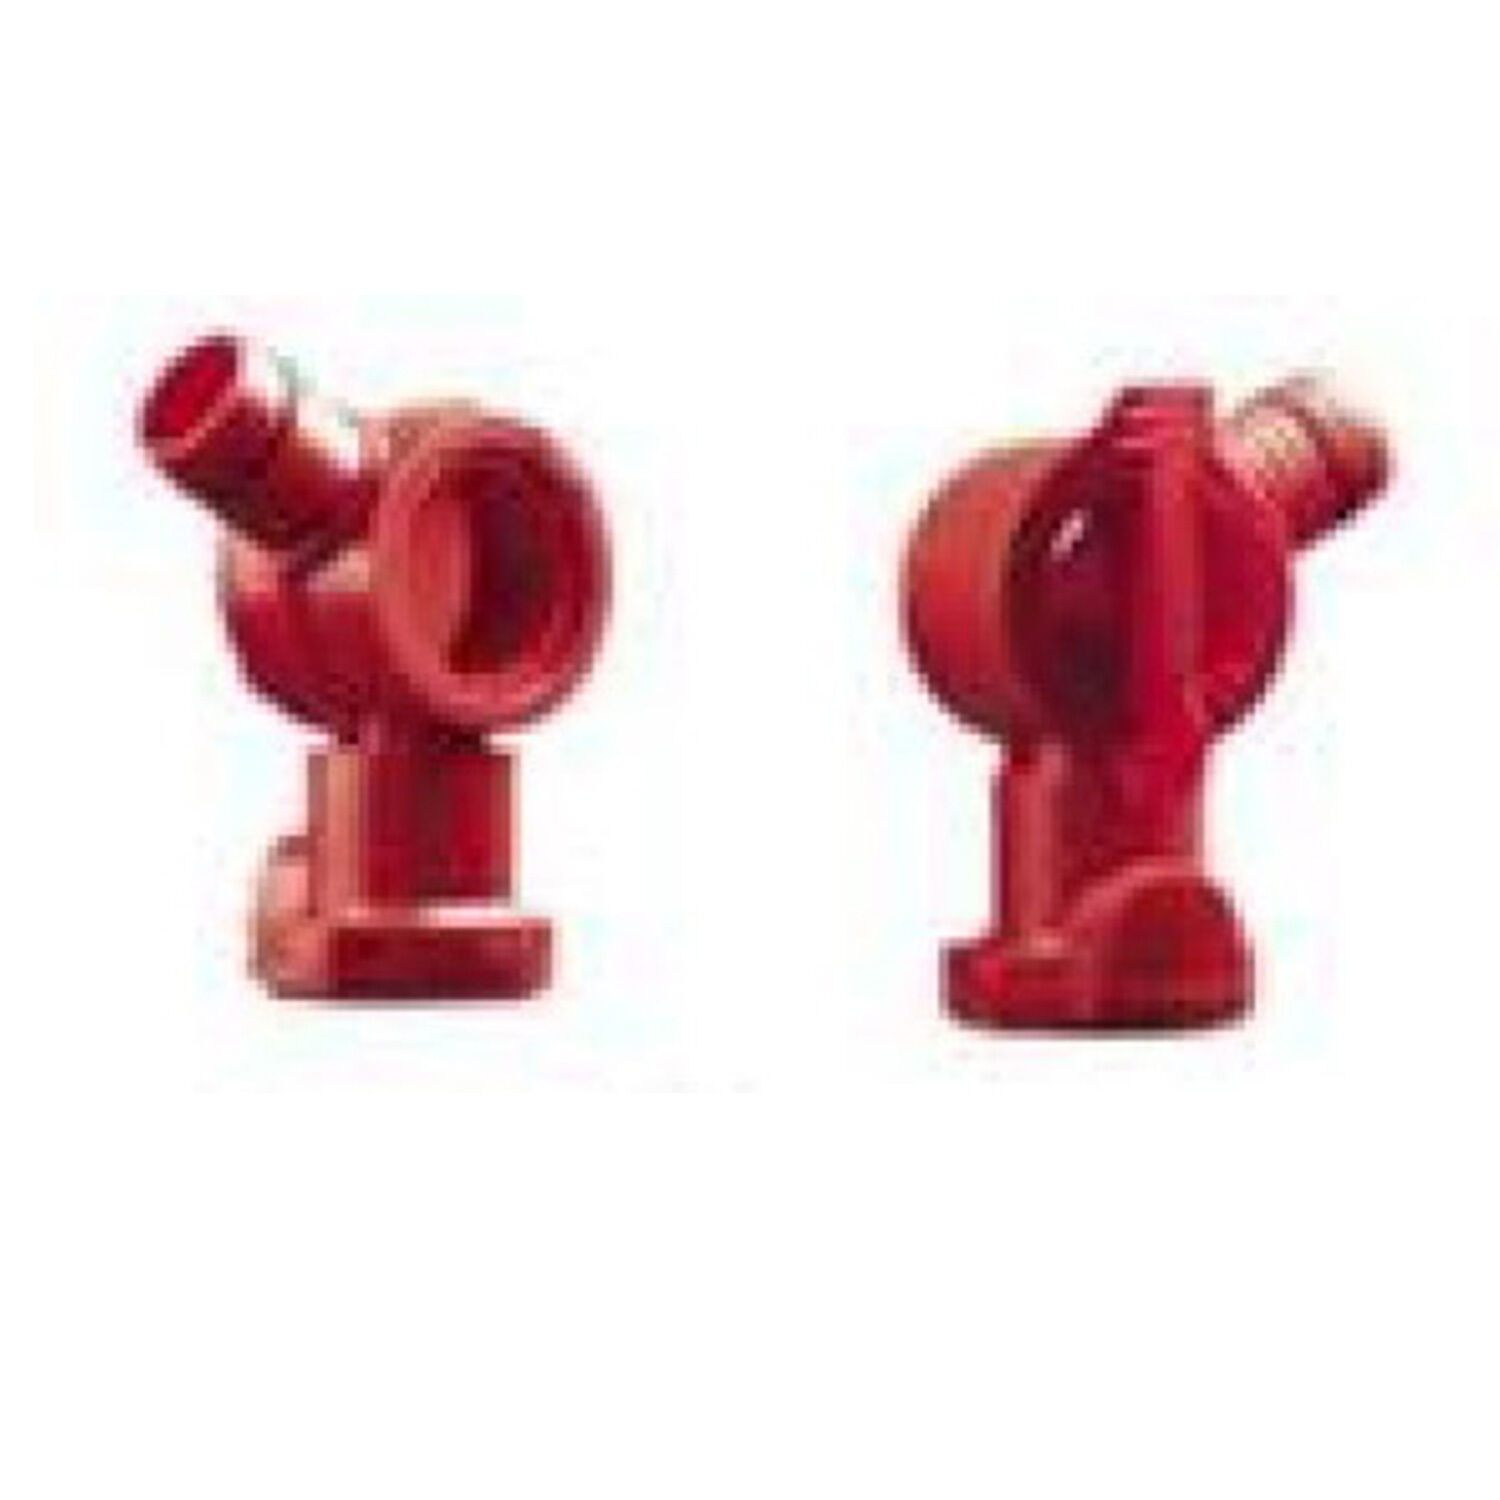 Replacement Taps for CFS 700 GPH / CFS 500